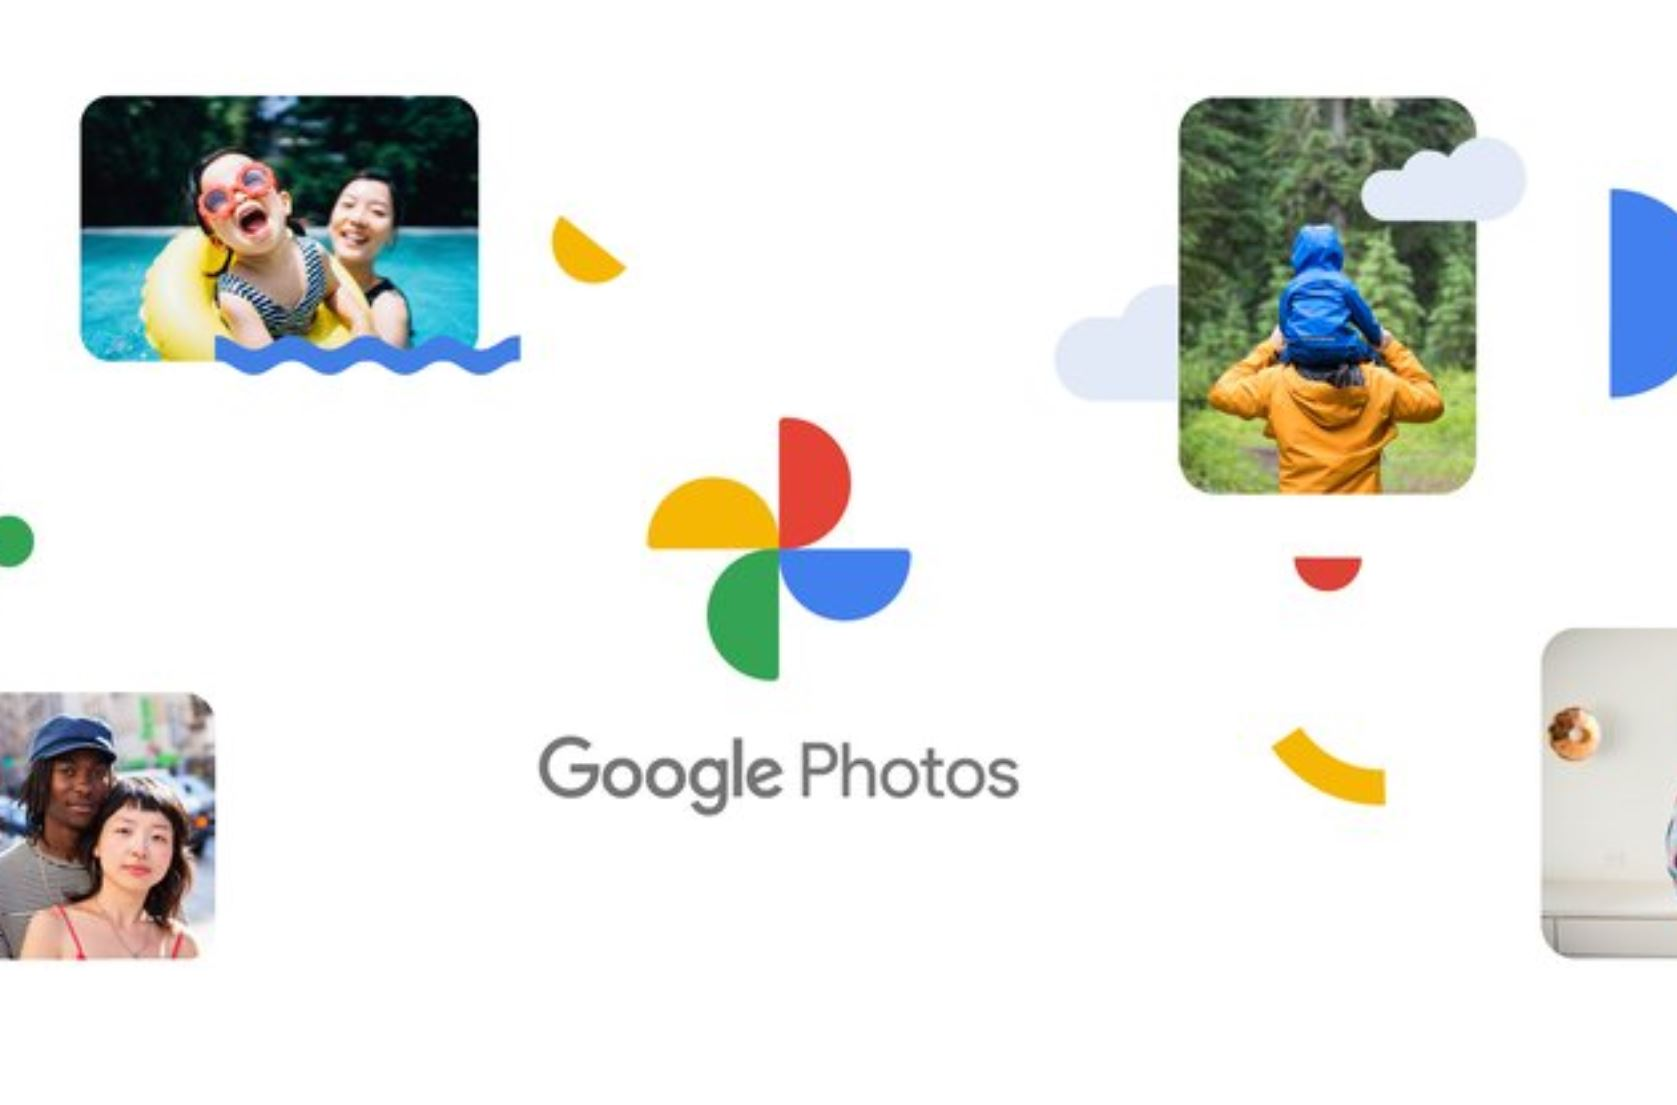 Google announces redesigned Google Photos experience